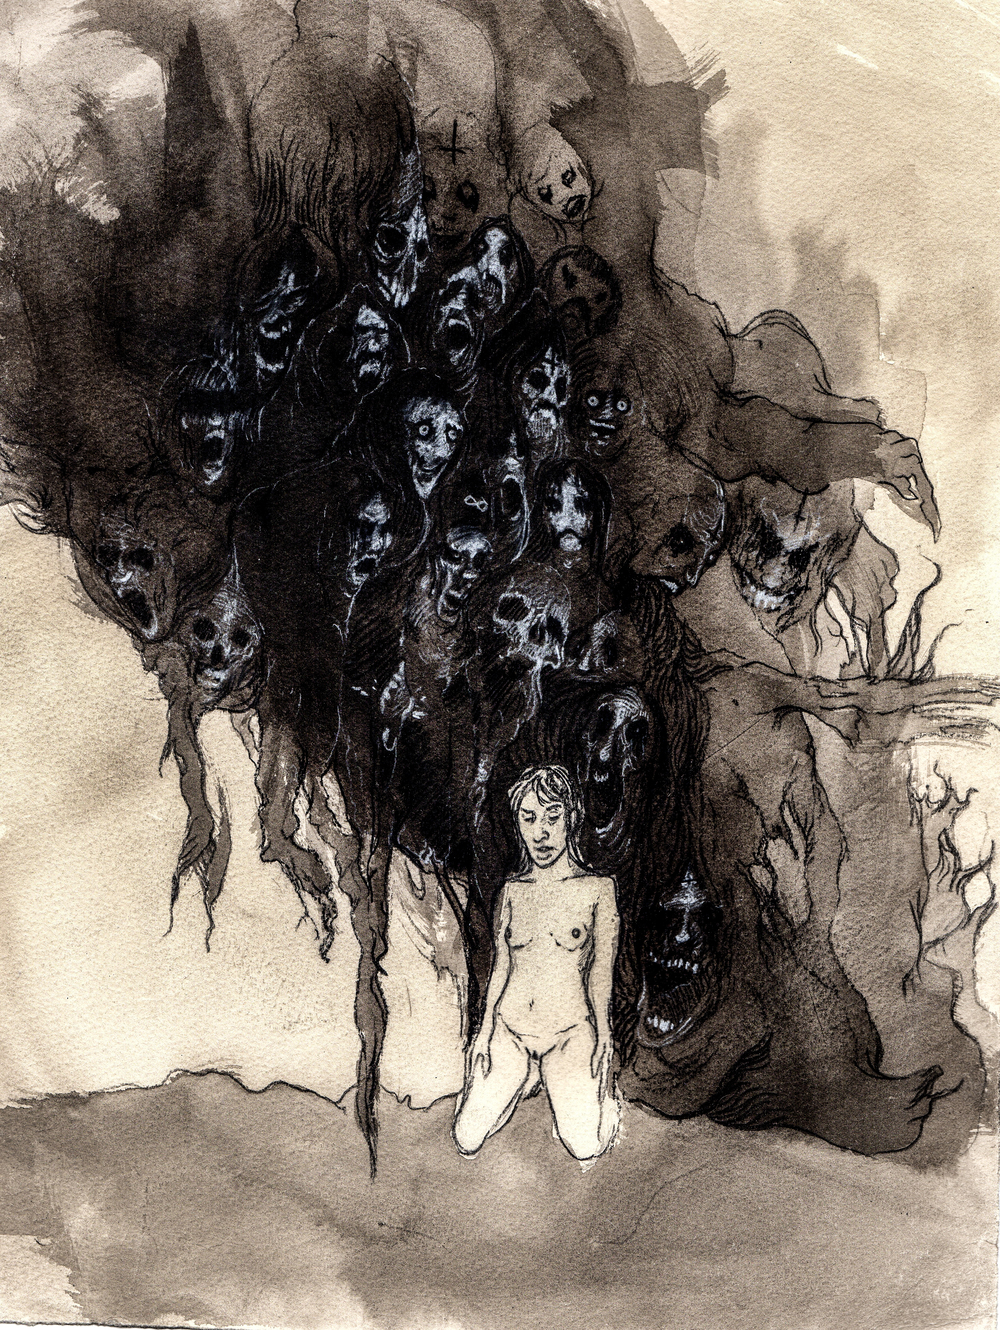 Why can't we just walk away?   2013. 12 x 15 inches. Ink wash on paper.